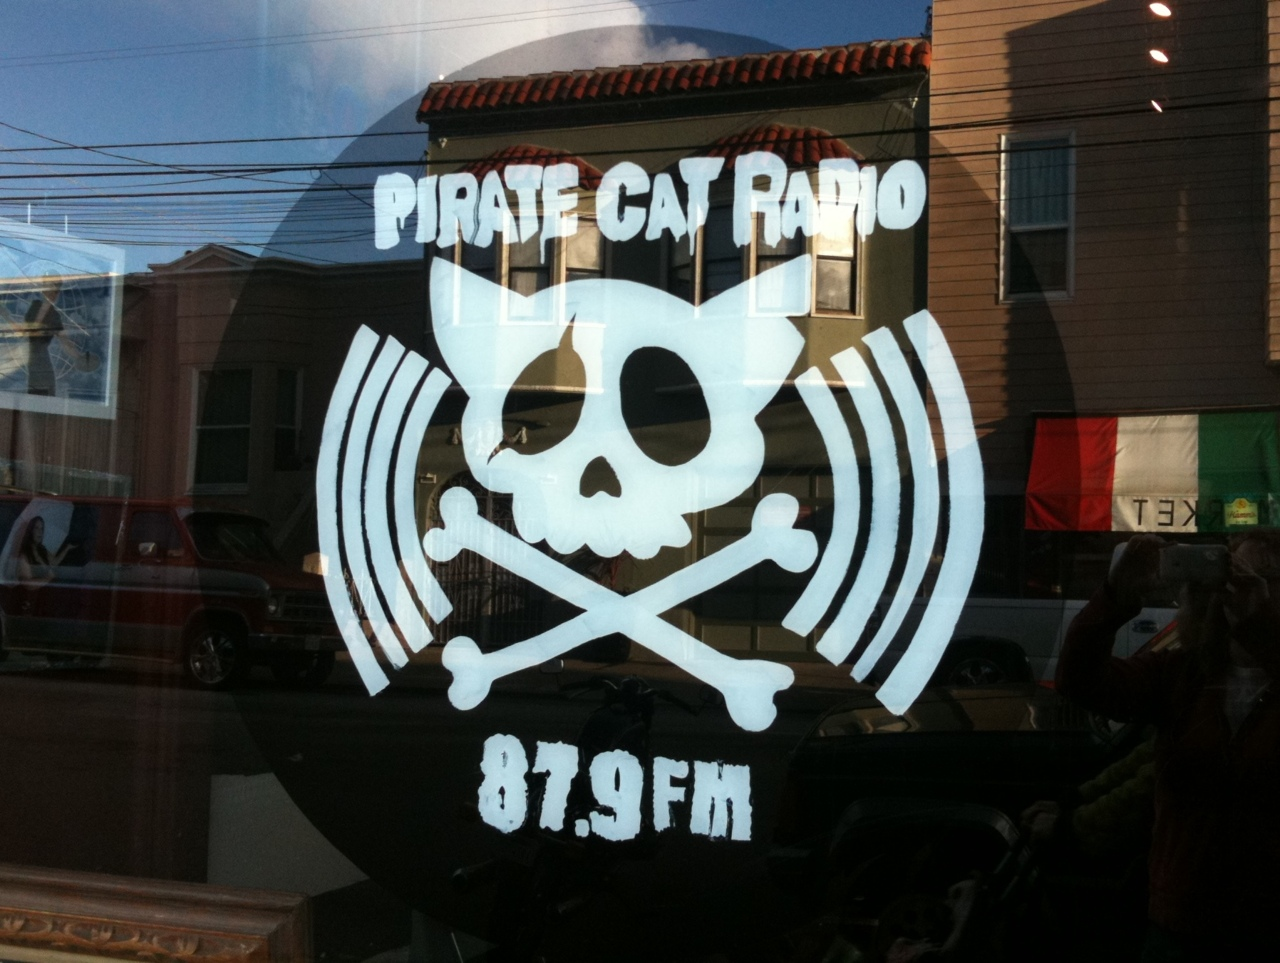 Today at 3pm, listen in Live on the air to hear Picture Atlantic perform an acoustic set and interview for Pirate Cat Radio. Stream the show from the link below: http://piratecatradio.com/listen-live See you then! -PA